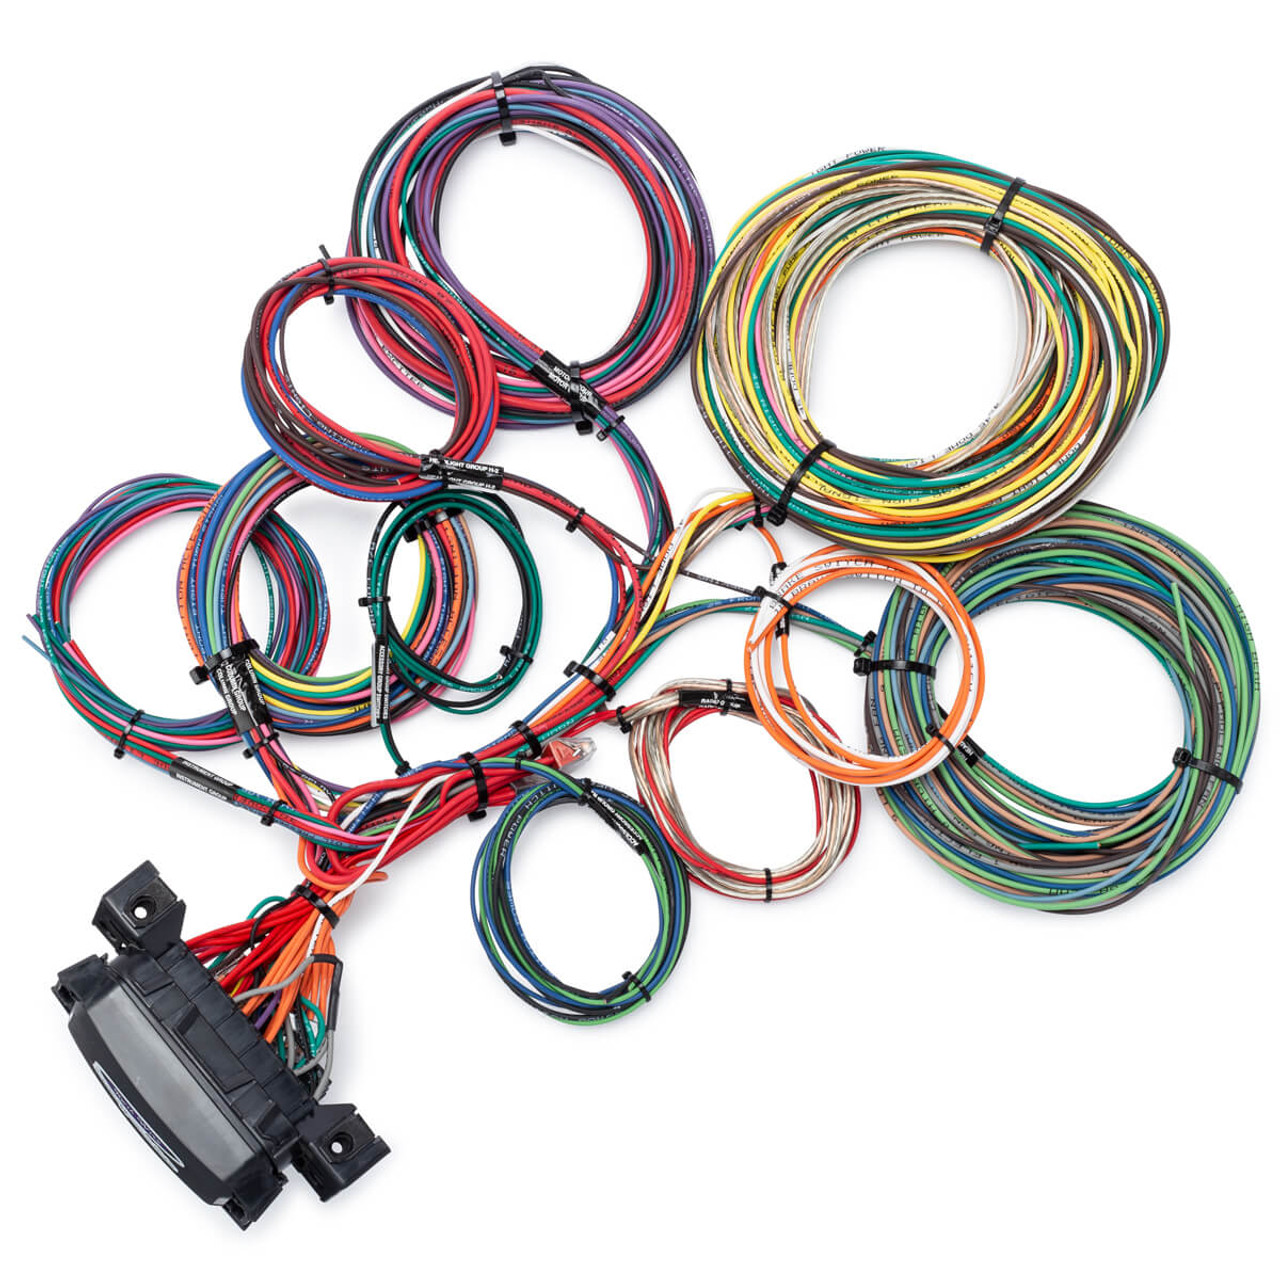 Astonishing Gmc Instrument Panel Jumper Wiring Harness Online Wiring Diagram Wiring Cloud Brecesaoduqqnet